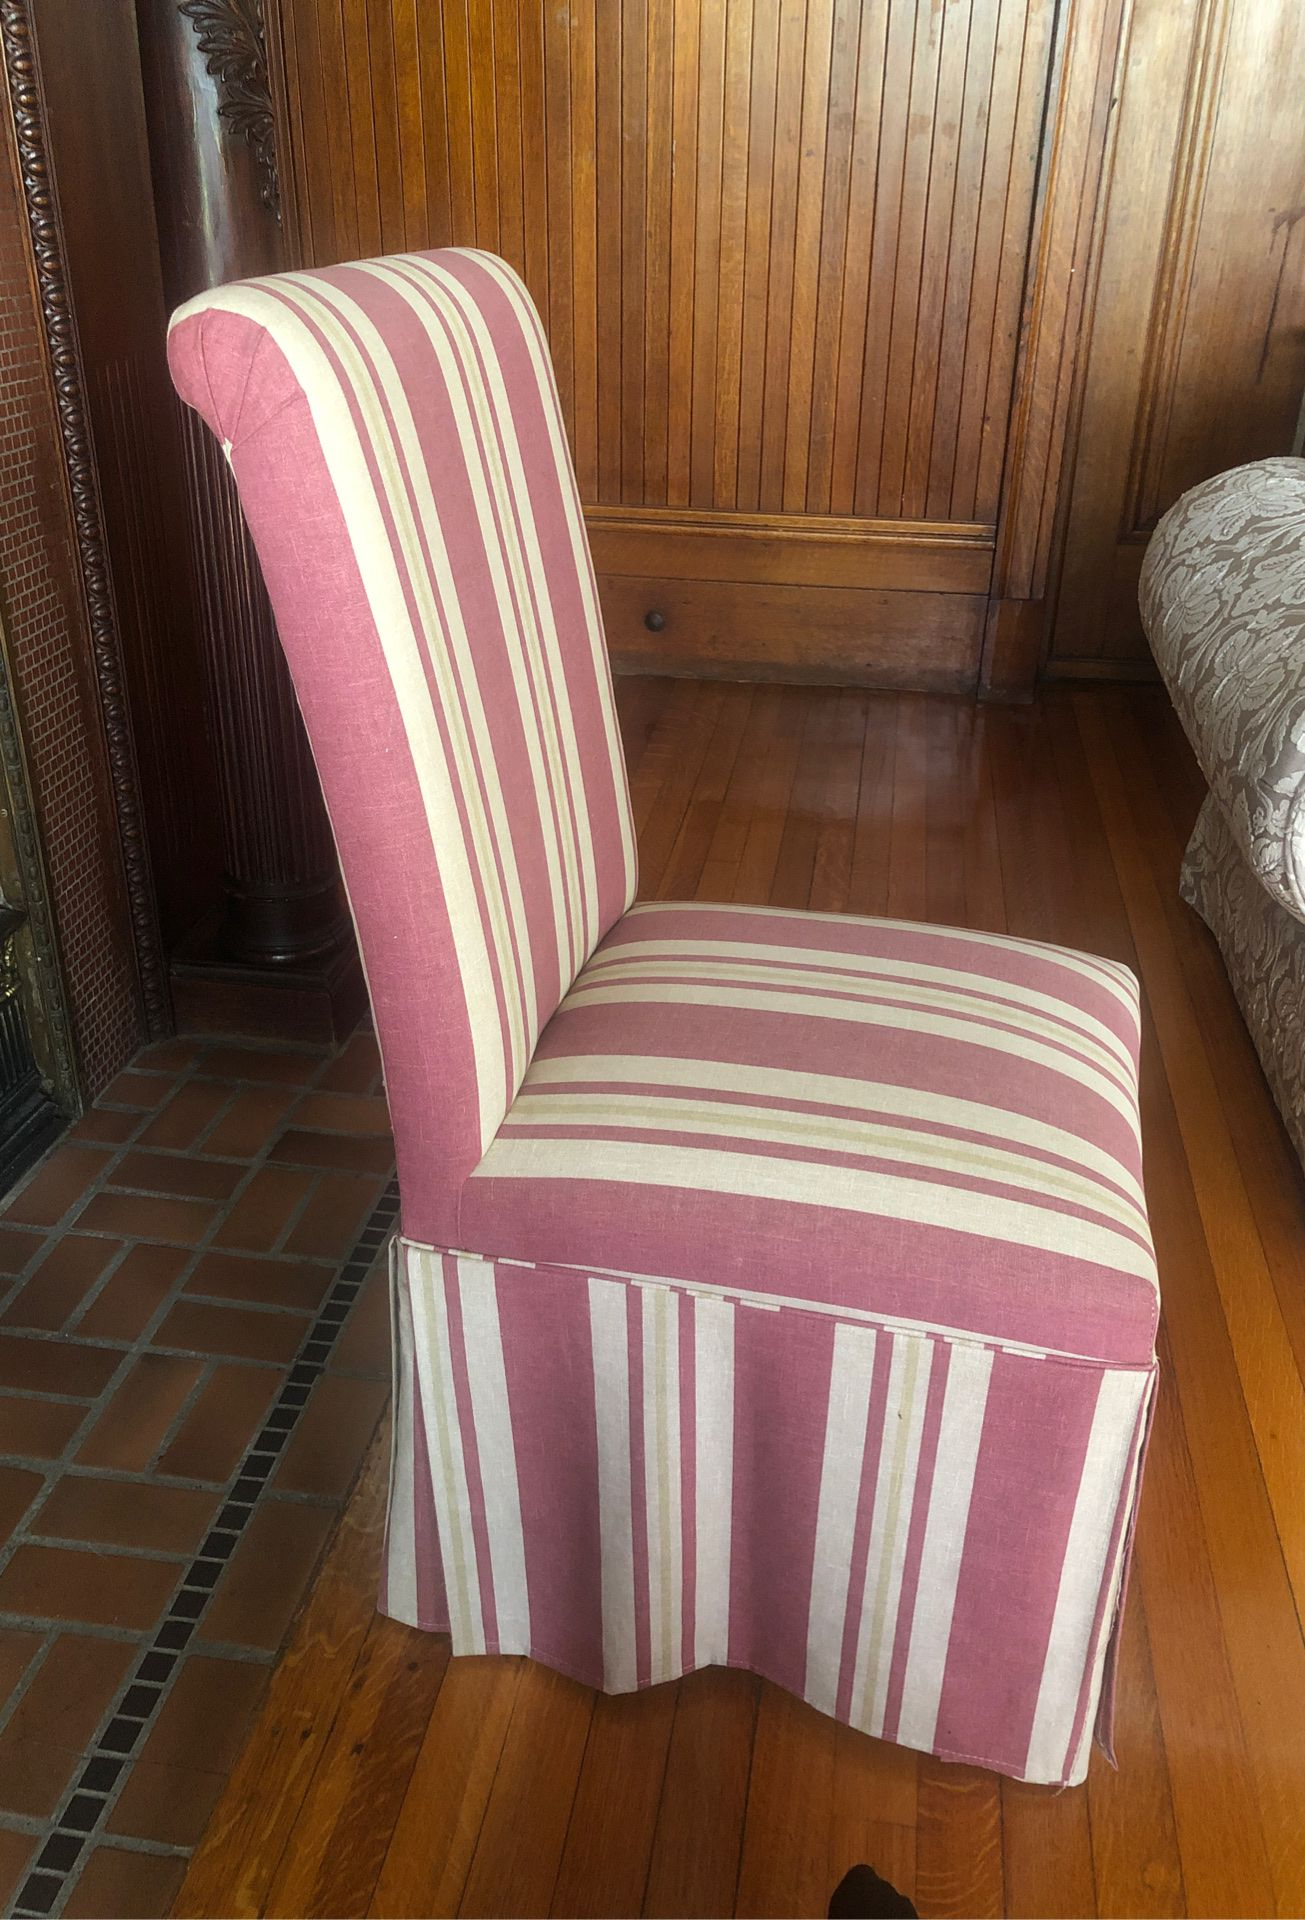 Victorian Chairs for Living Room or Dining.